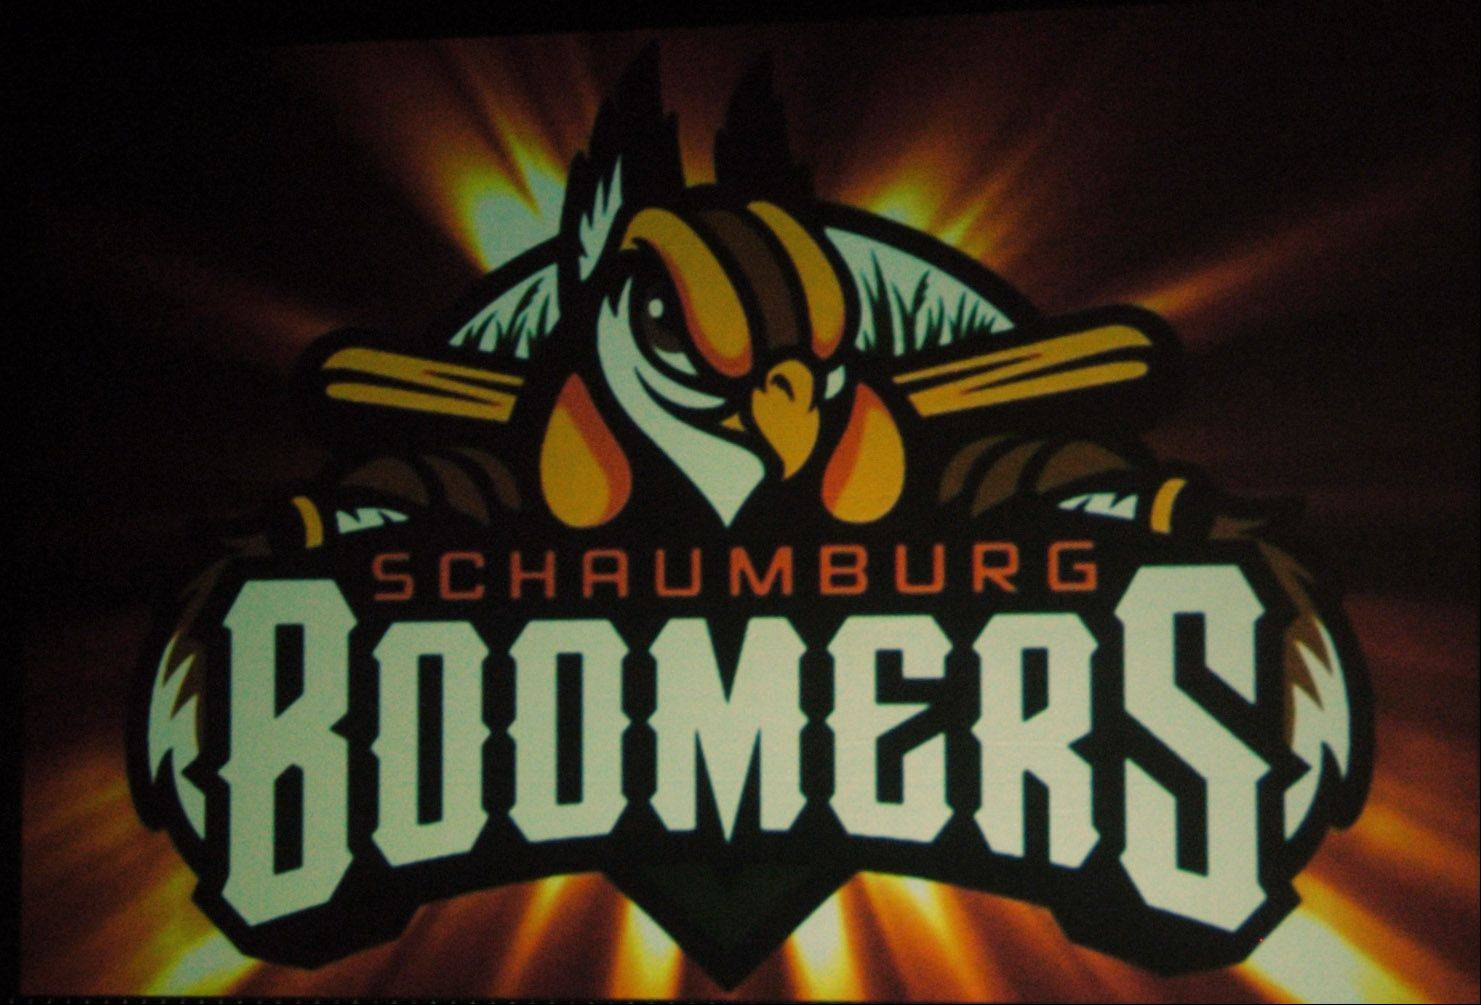 JOE LEWNARD/jlewnard@dailyherald.com Minor league baseball returned to Schaumburg in the form of the Boomers team after a year's hiatus due to the financial troubles of the team that formerly occupied the stadium.